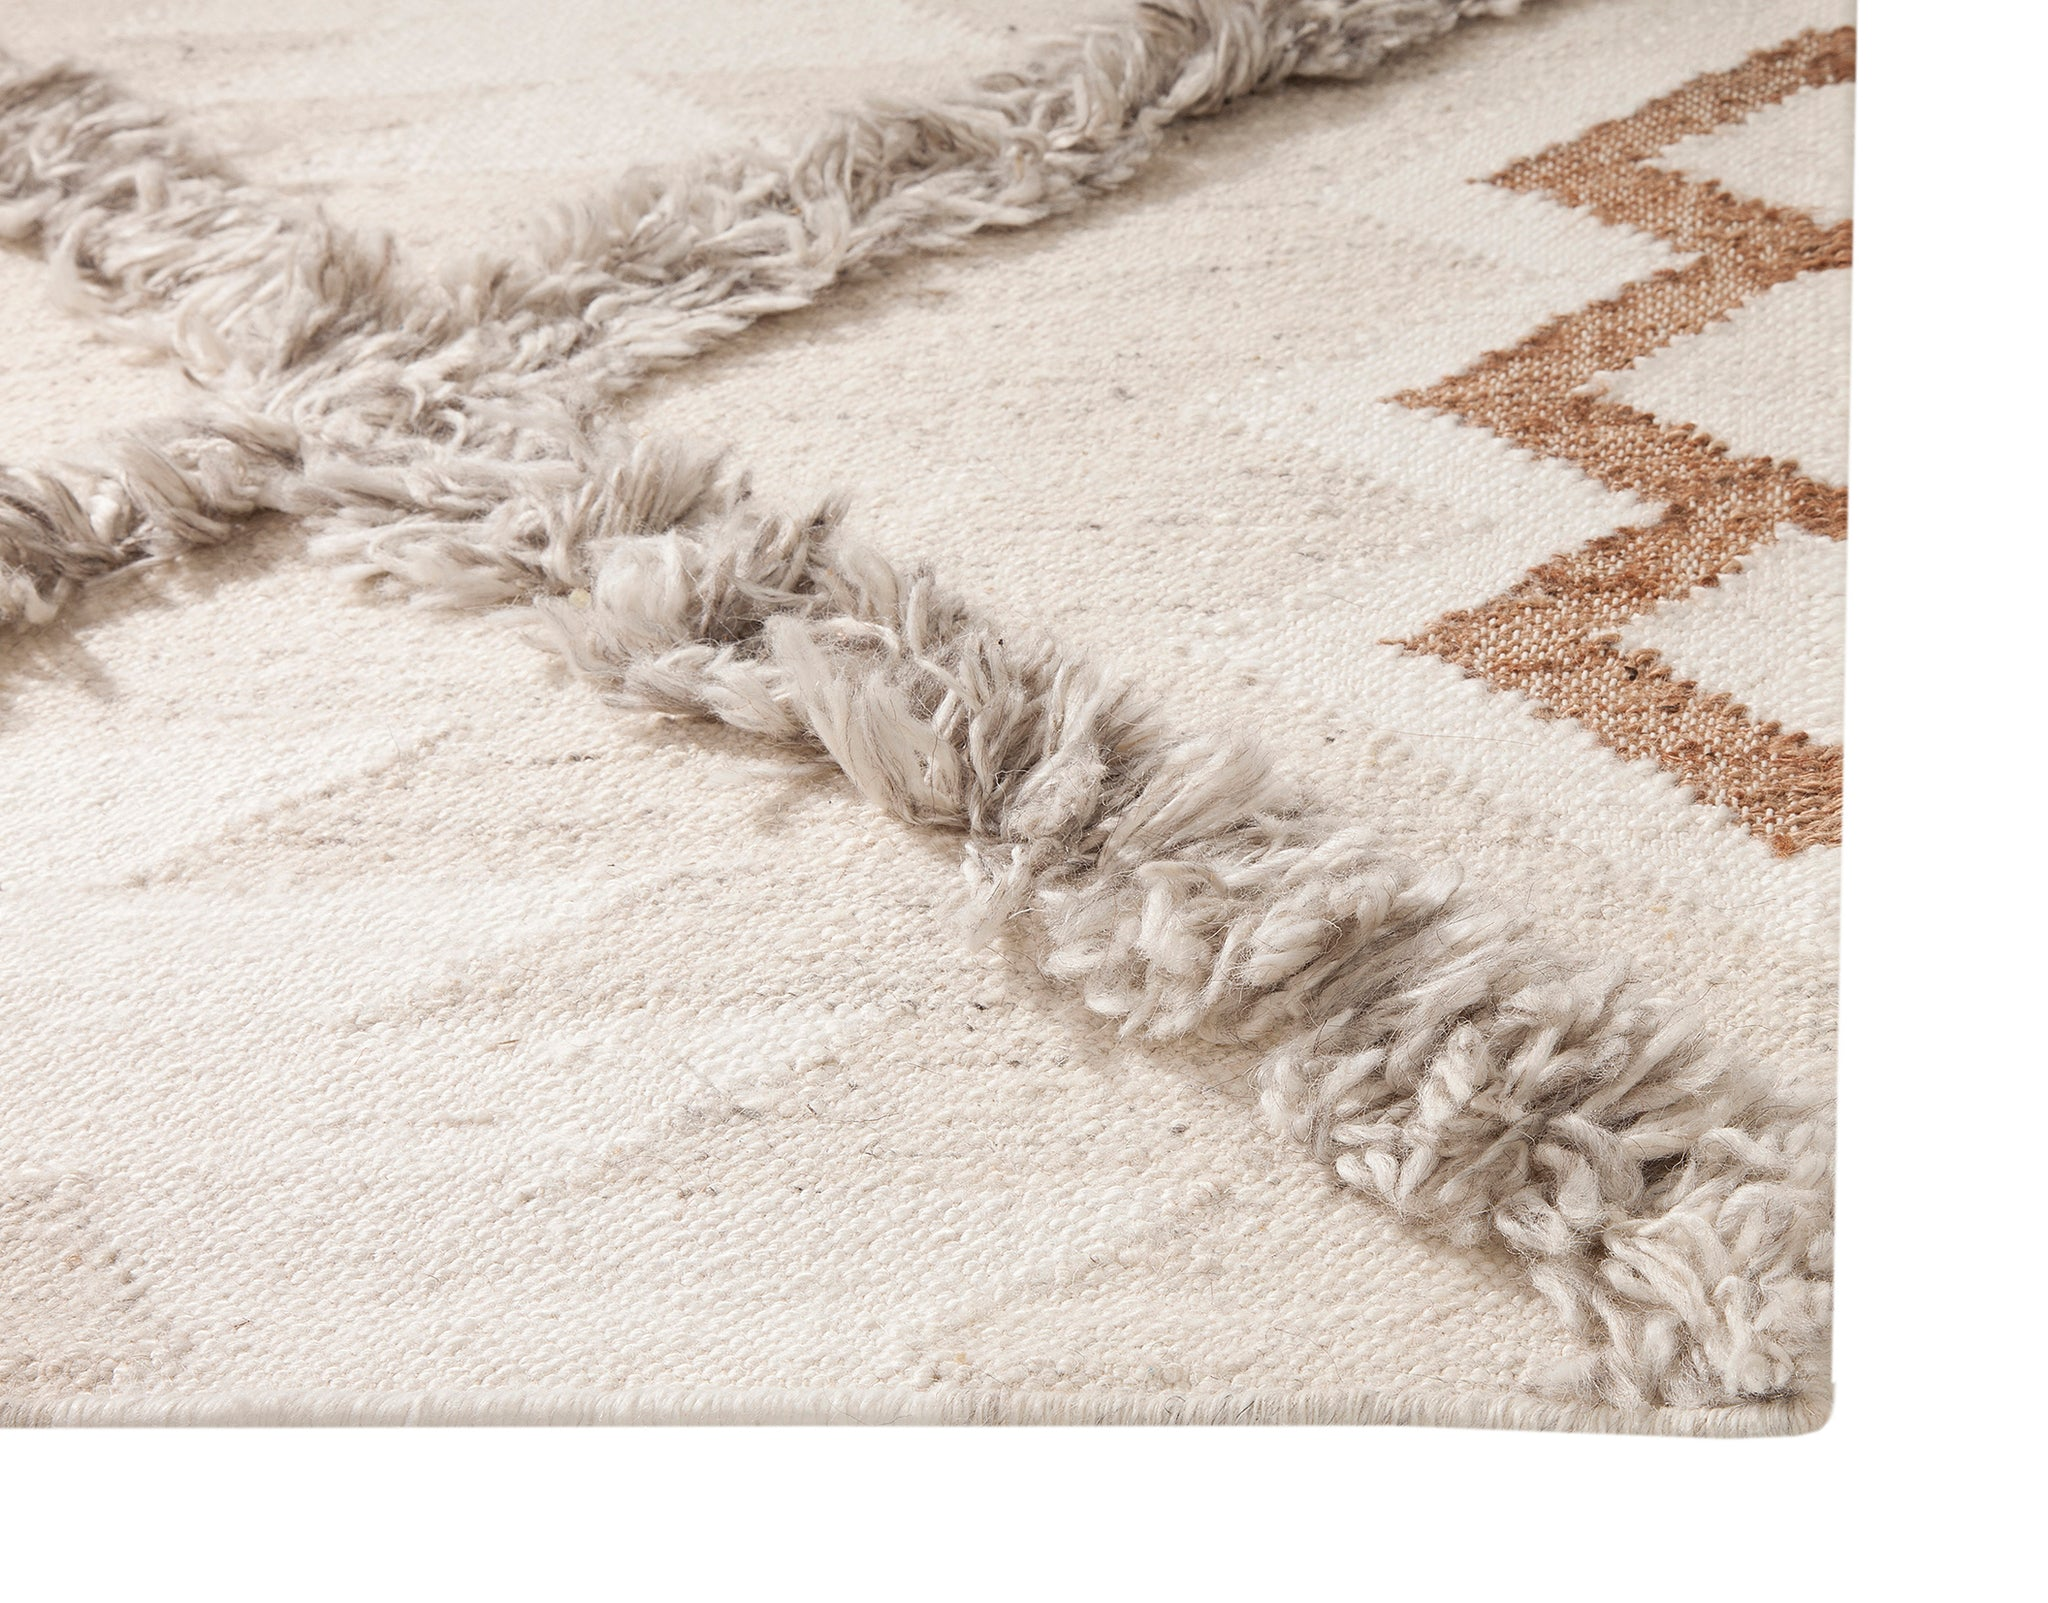 Southwest Boho Modern Neutral Flatweave Wool Area Rug